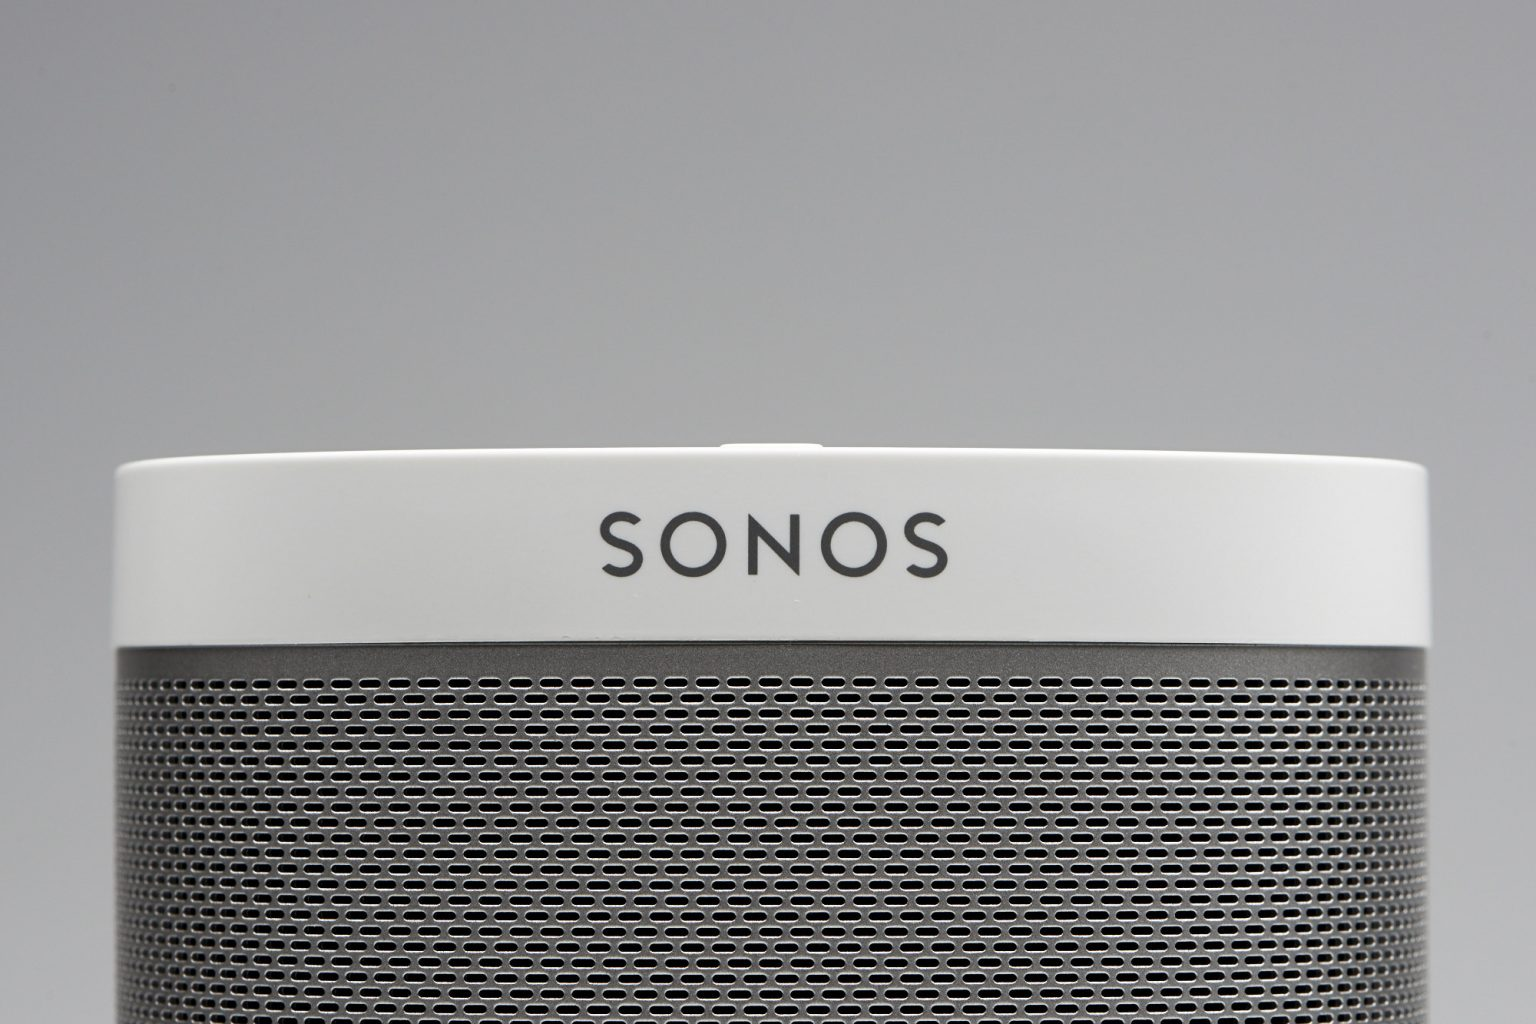 product photography for Sonos